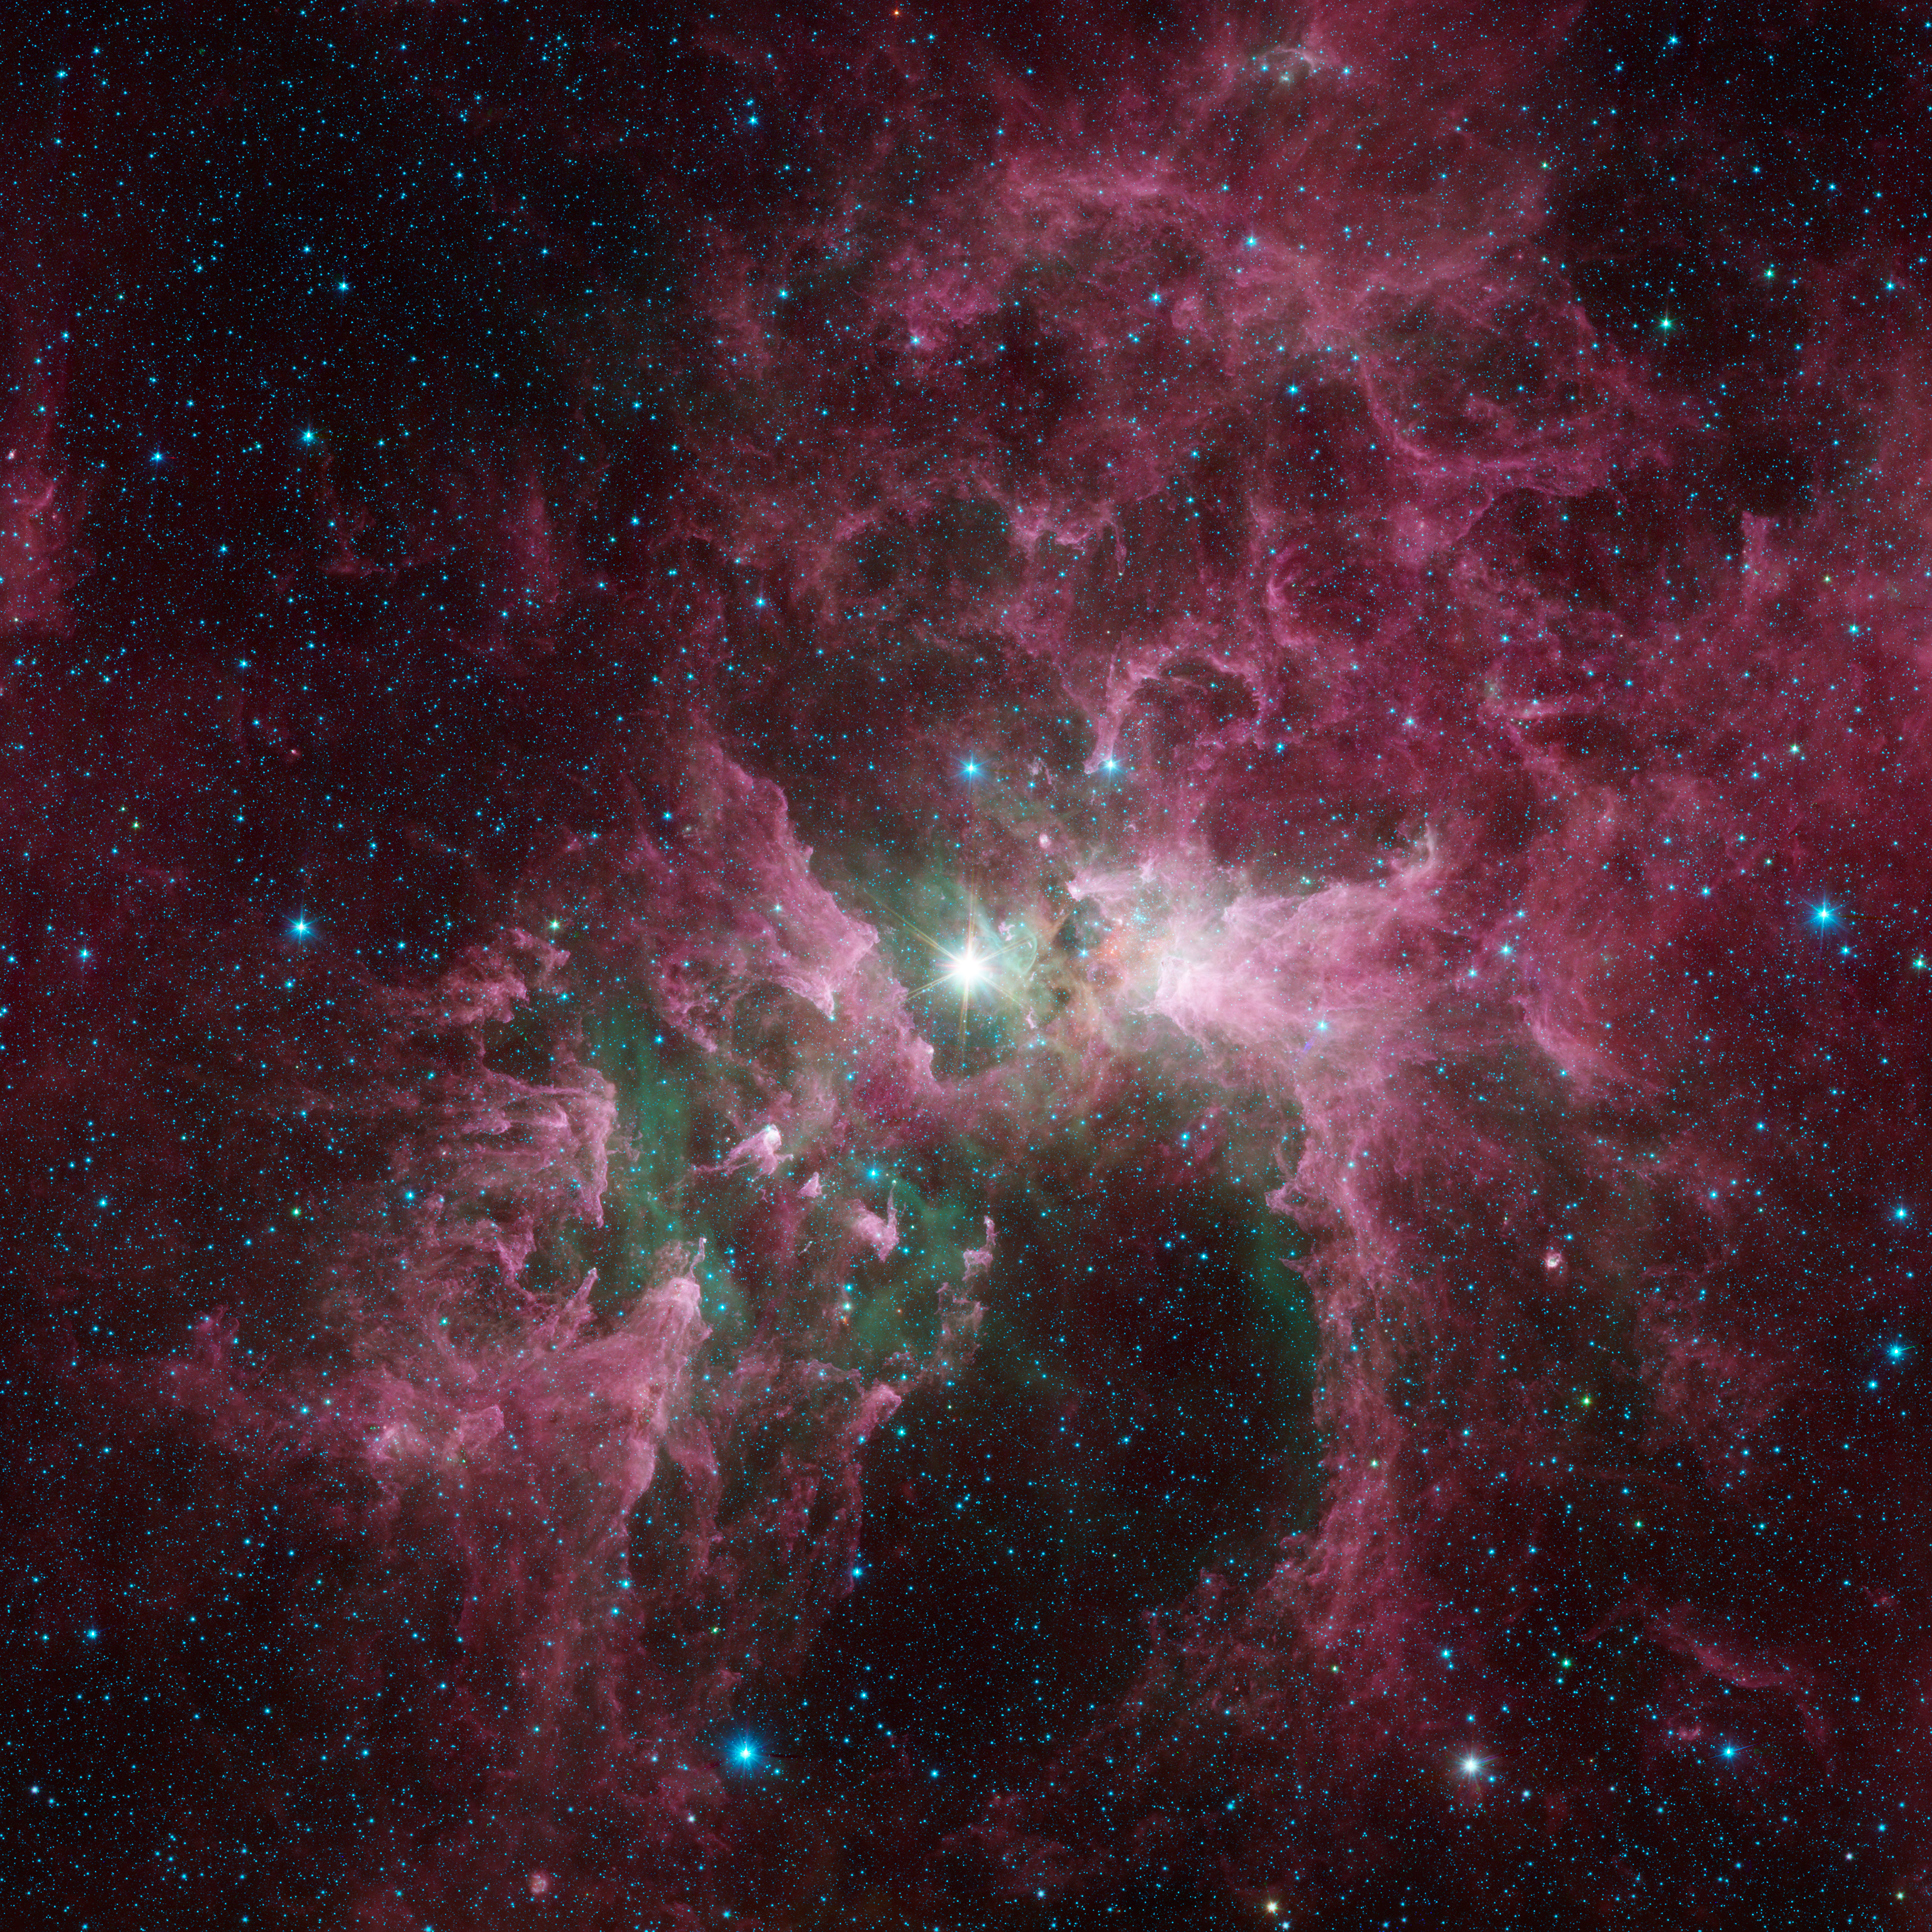 Tortured Clouds of Eta Carinae: Massive stars can wreak havoc on their surroundings, as can be seen in this new view of the Carina Nebula from the Spitzer Space Telescope. Credit: NASA/JPL-Caltech